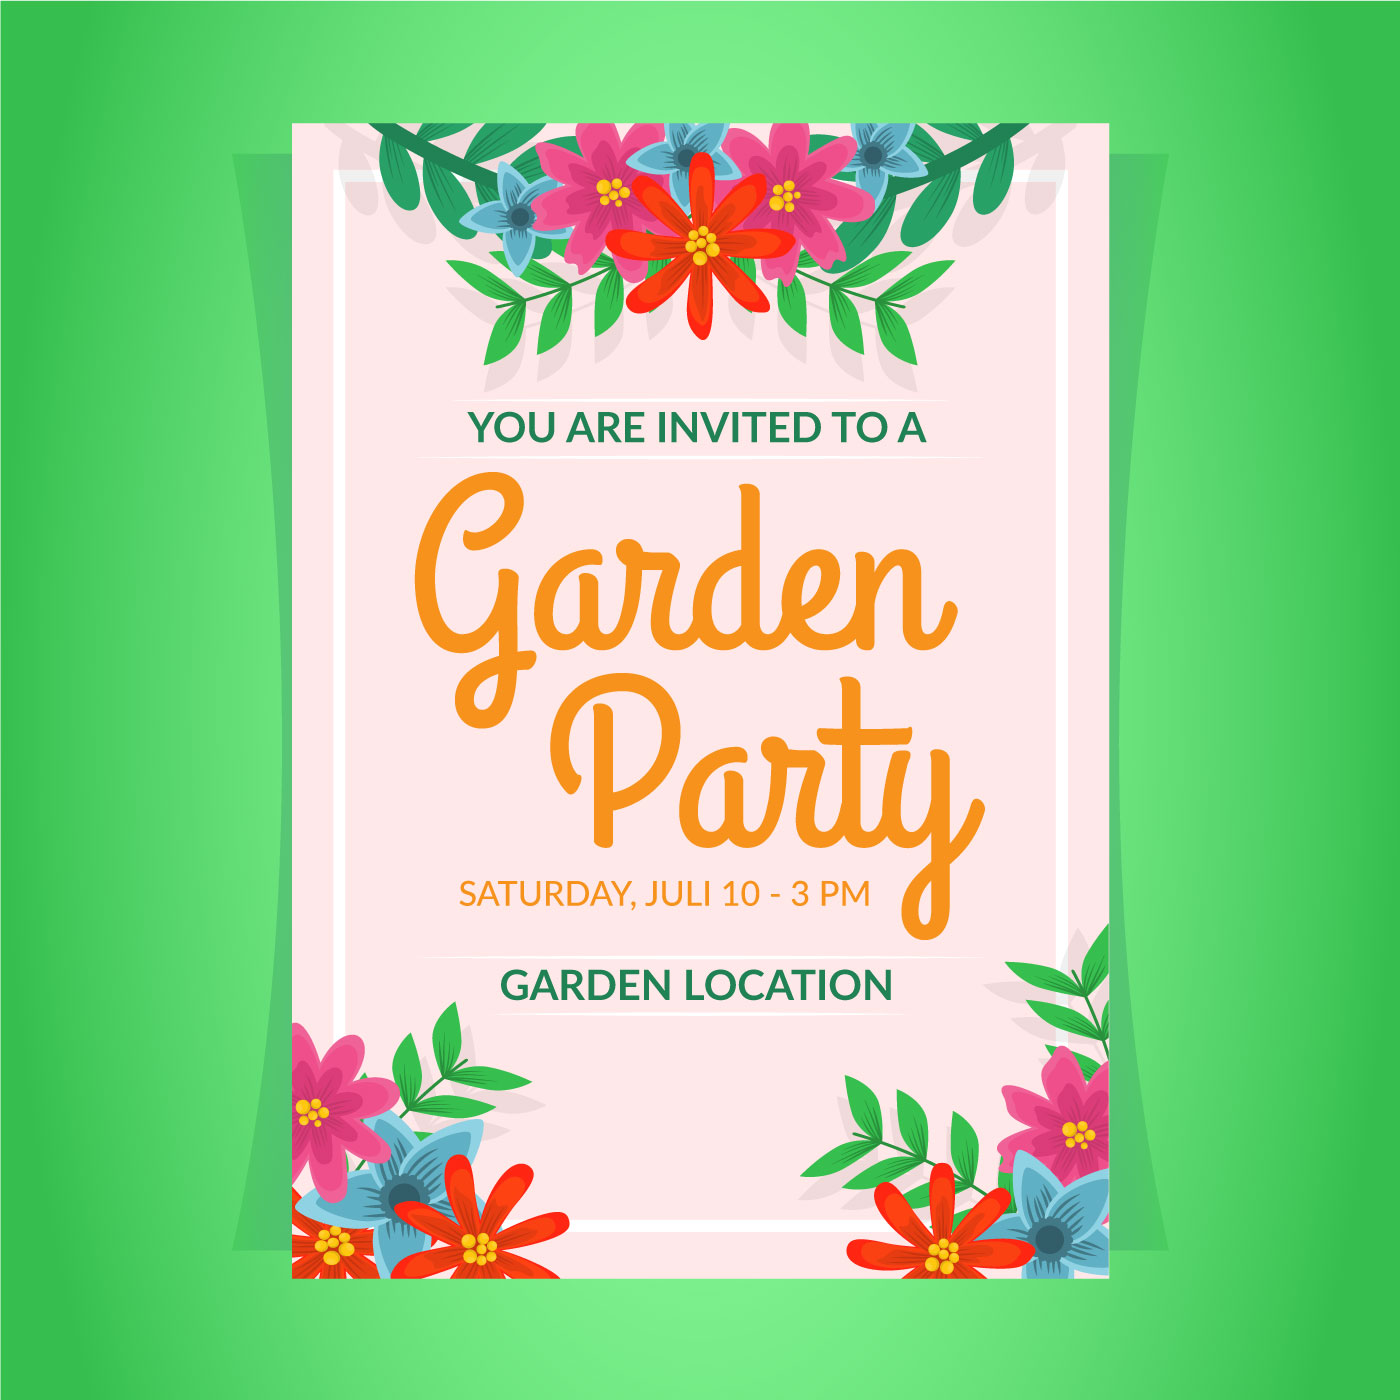 Invitation Party Wedding Free Vector Graphic On Pixabay: Garden Party Invitation Template